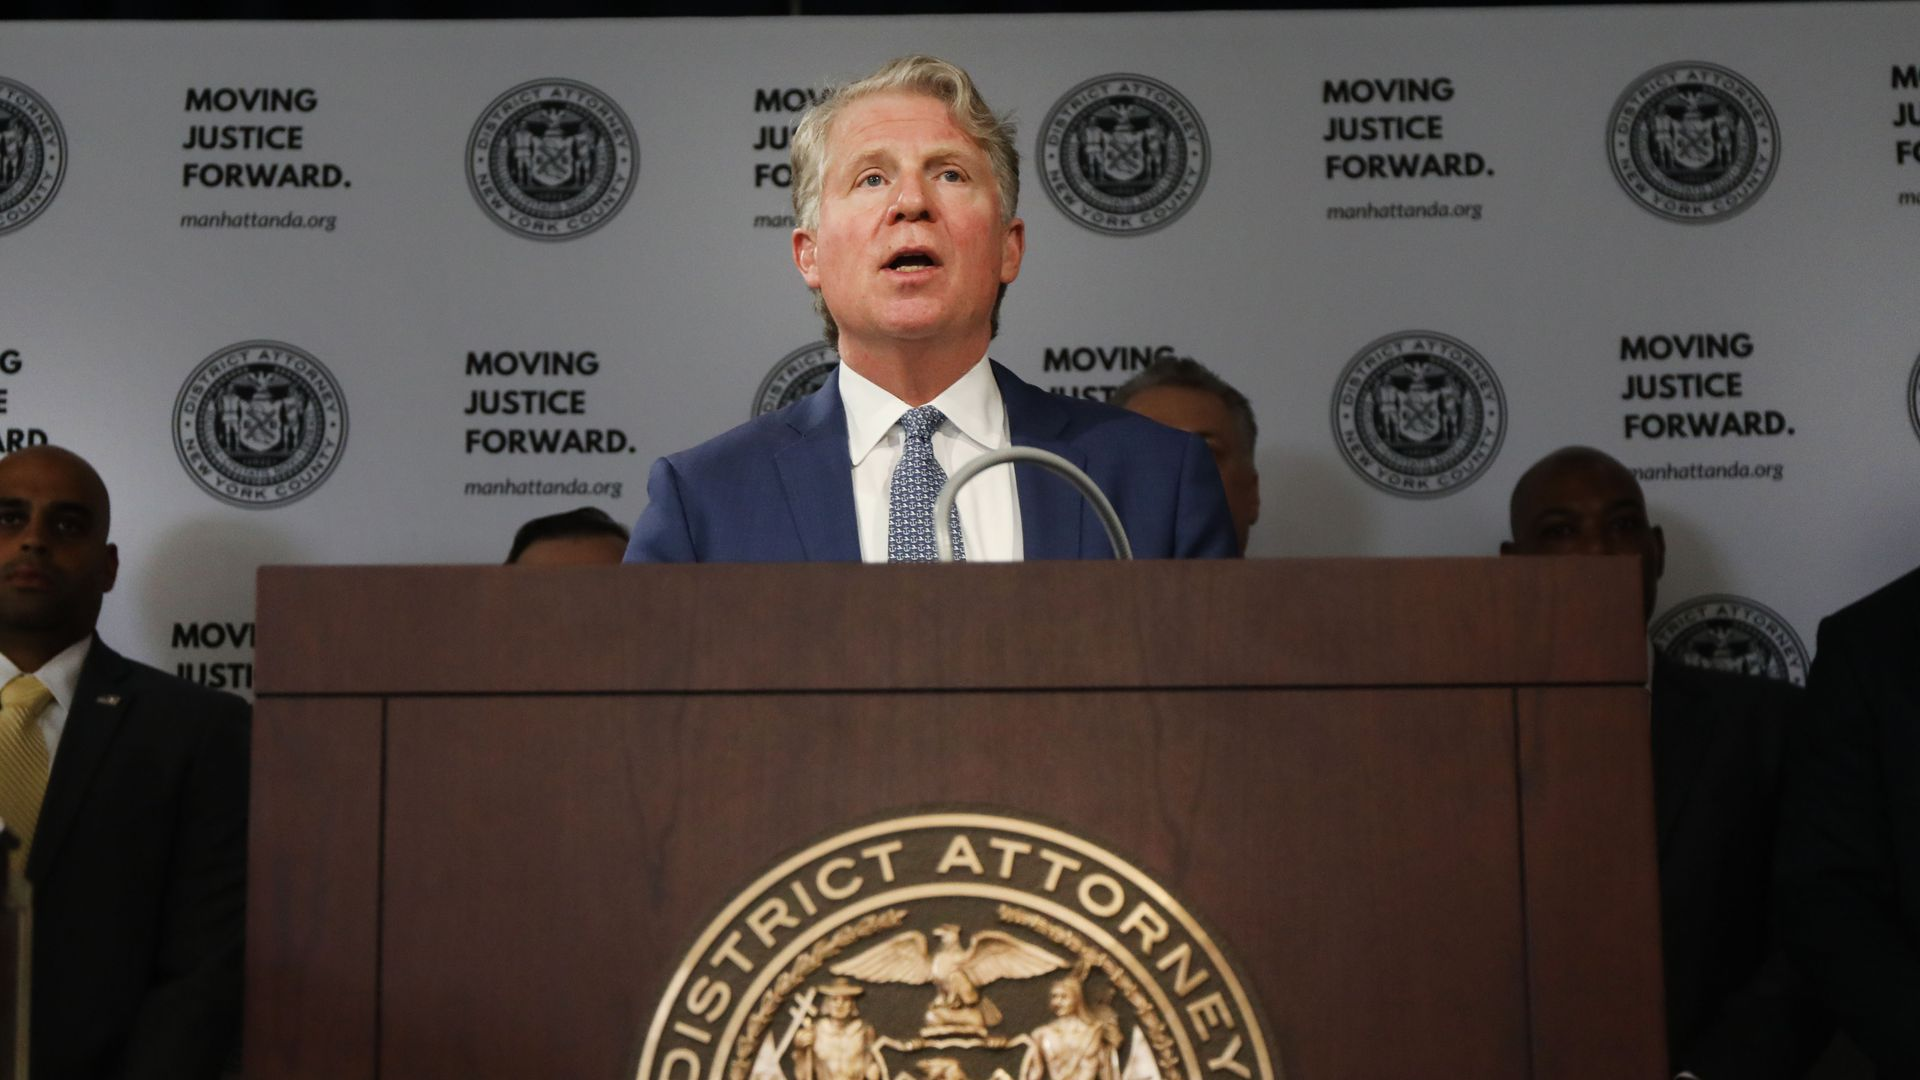 Manhattan District Attorney Cyrus Vance Jr. announces the take down of a crime ring run on the dark web on April 16, 2019 in New York City.